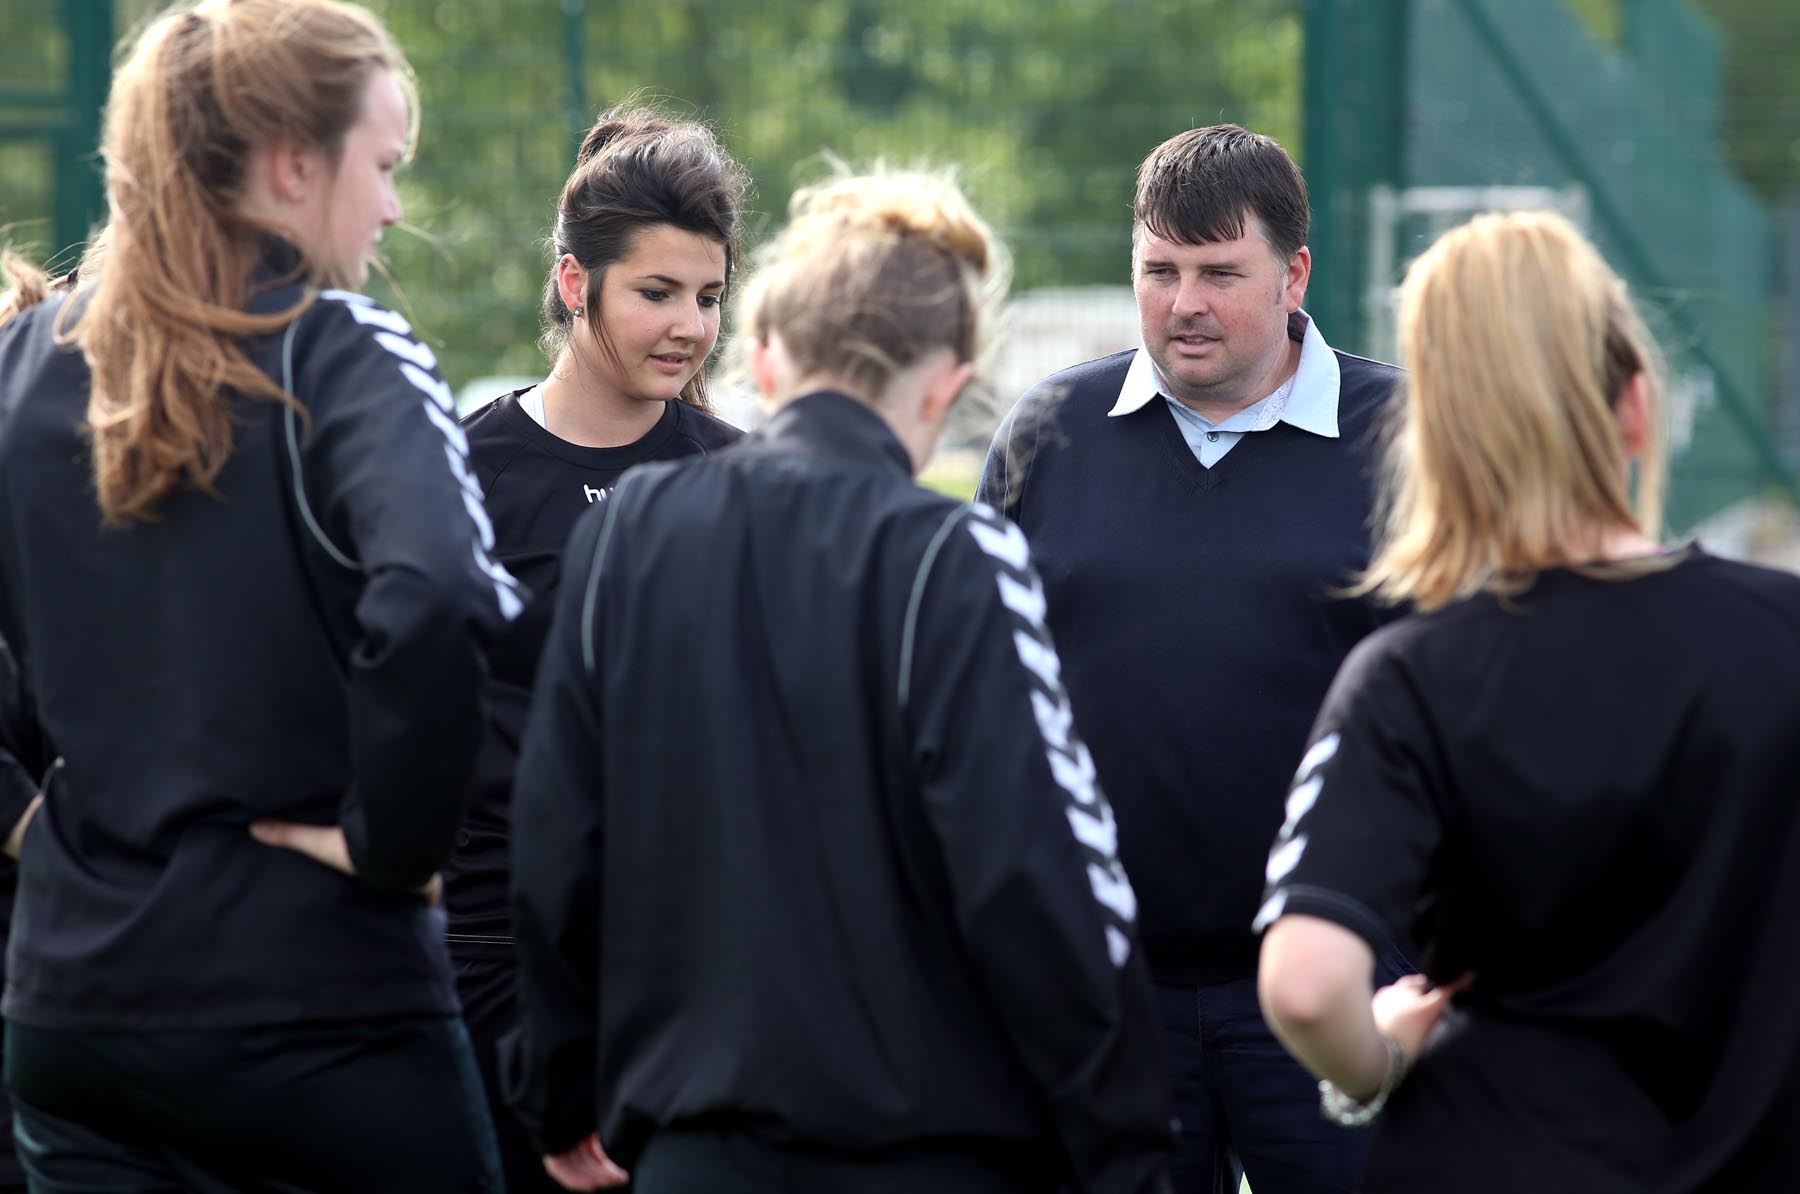 GETTING READY: Coach Lee Sanders with members of the Durham Women's Football Club who have been accepted into the Women's Super League for the 2014 season